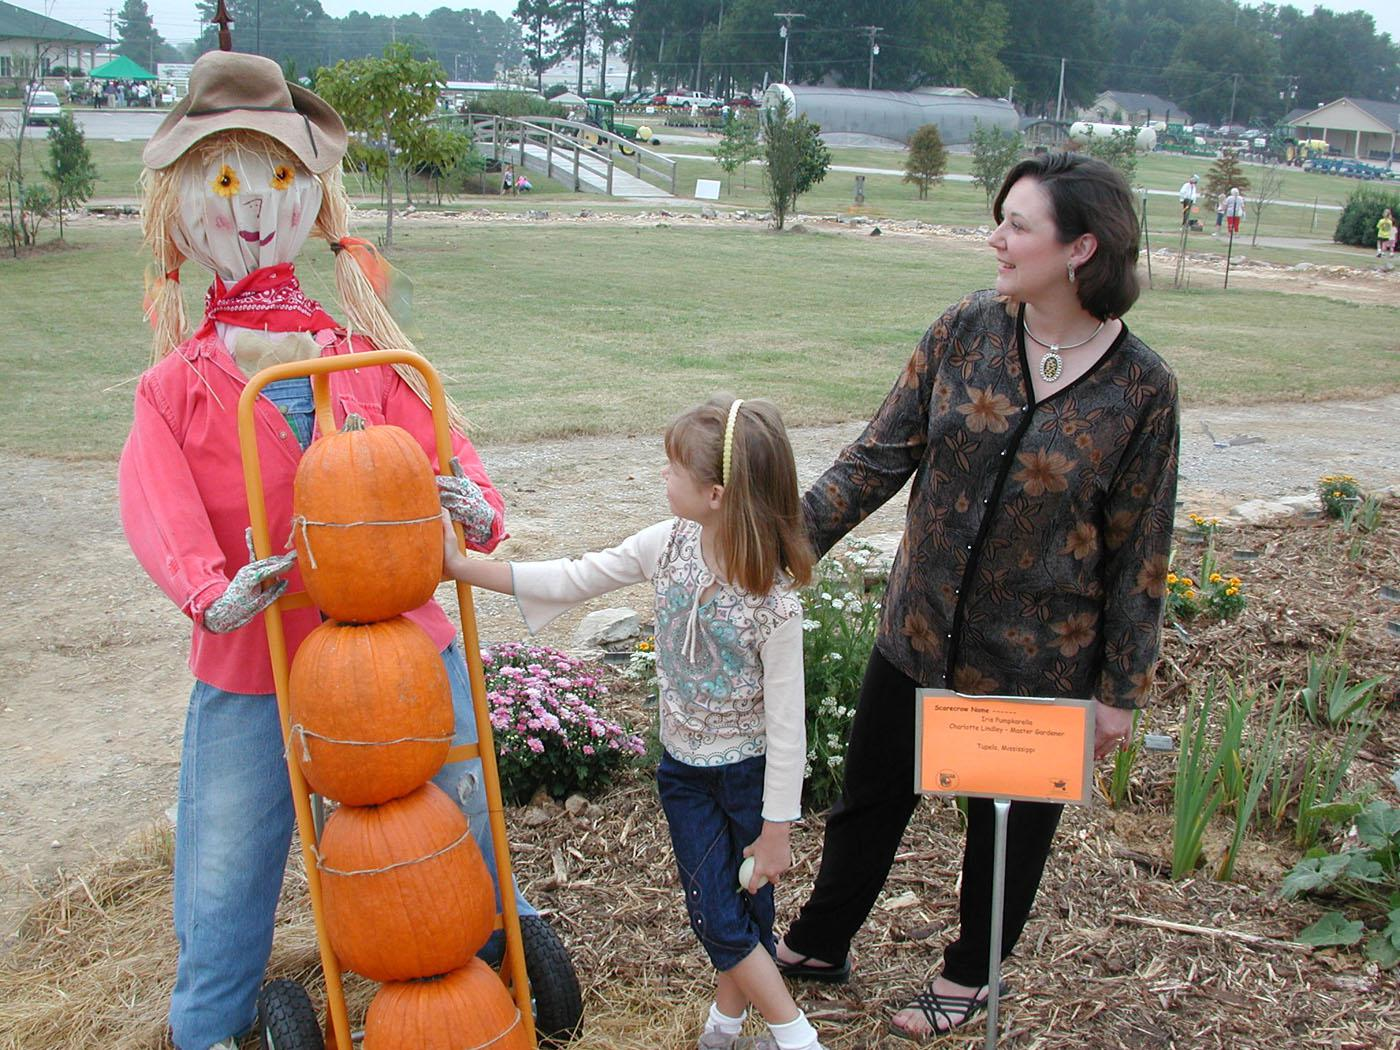 North Mississippi boasts a bumper crop of scarecrows.